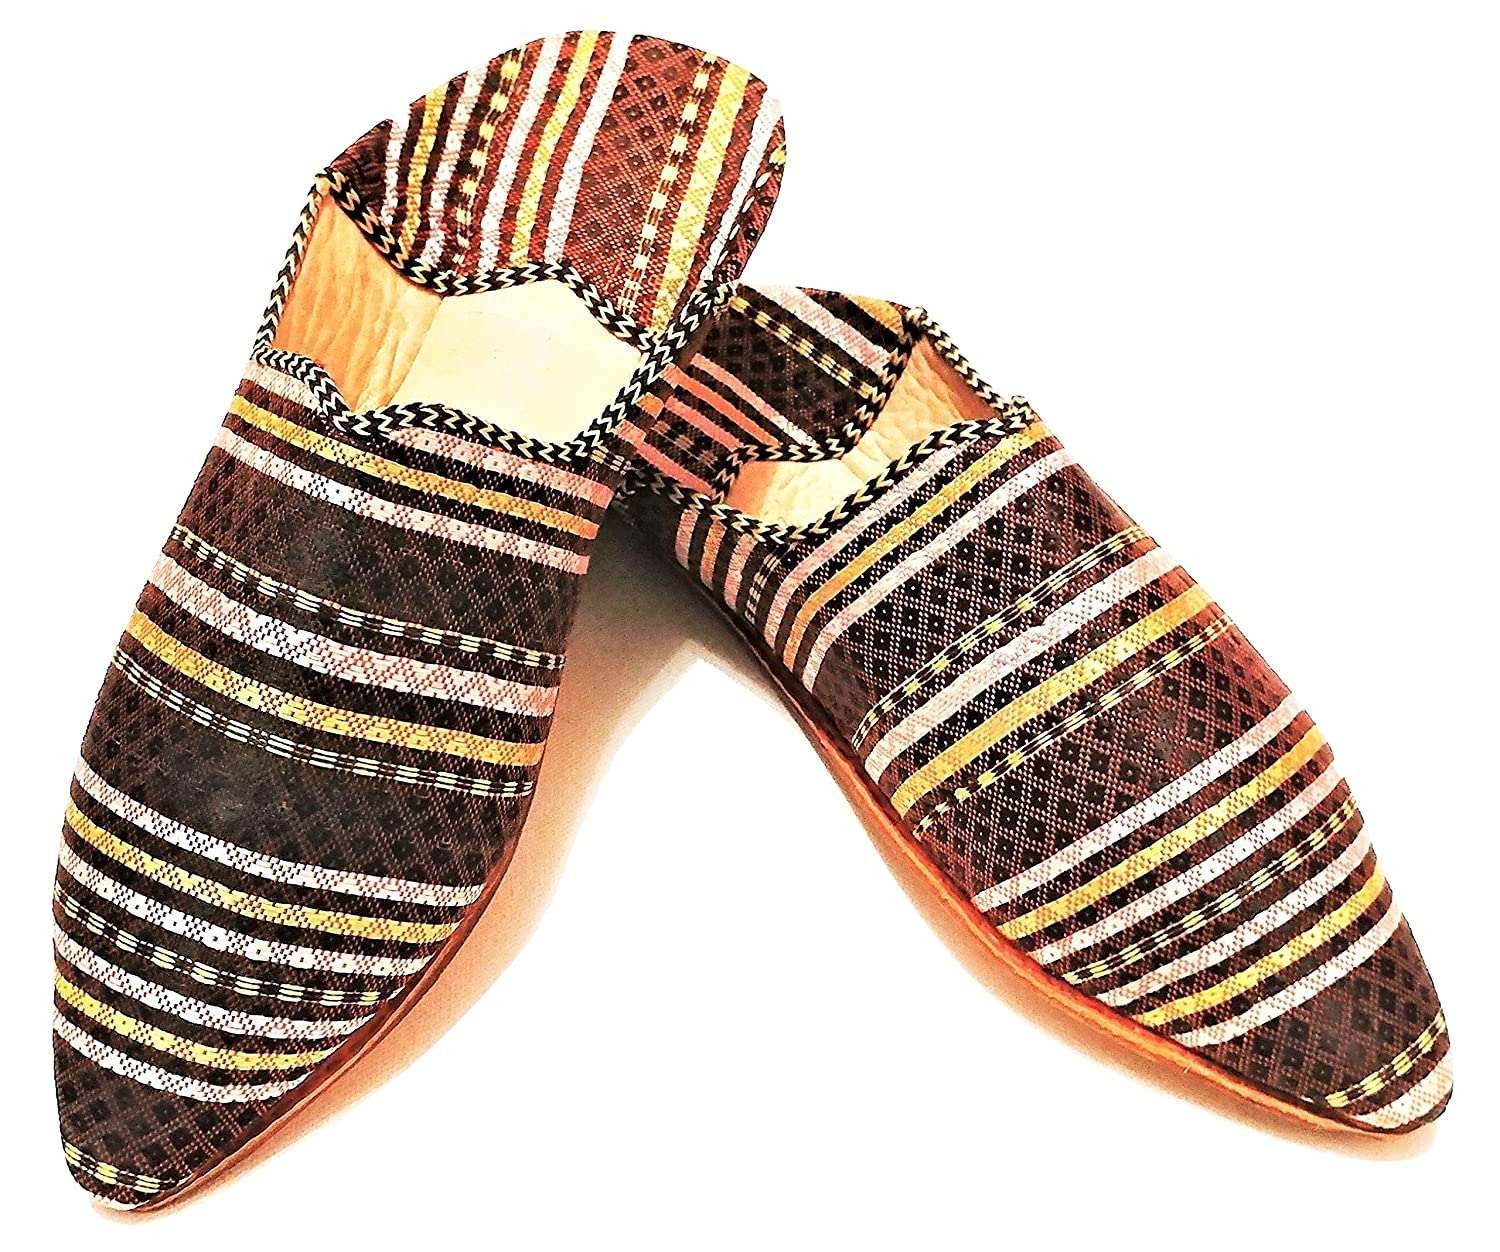 da68d9ec51fe0 lovely Moroccan Babouche Flat Fabric with Leather Sole Handmade ...